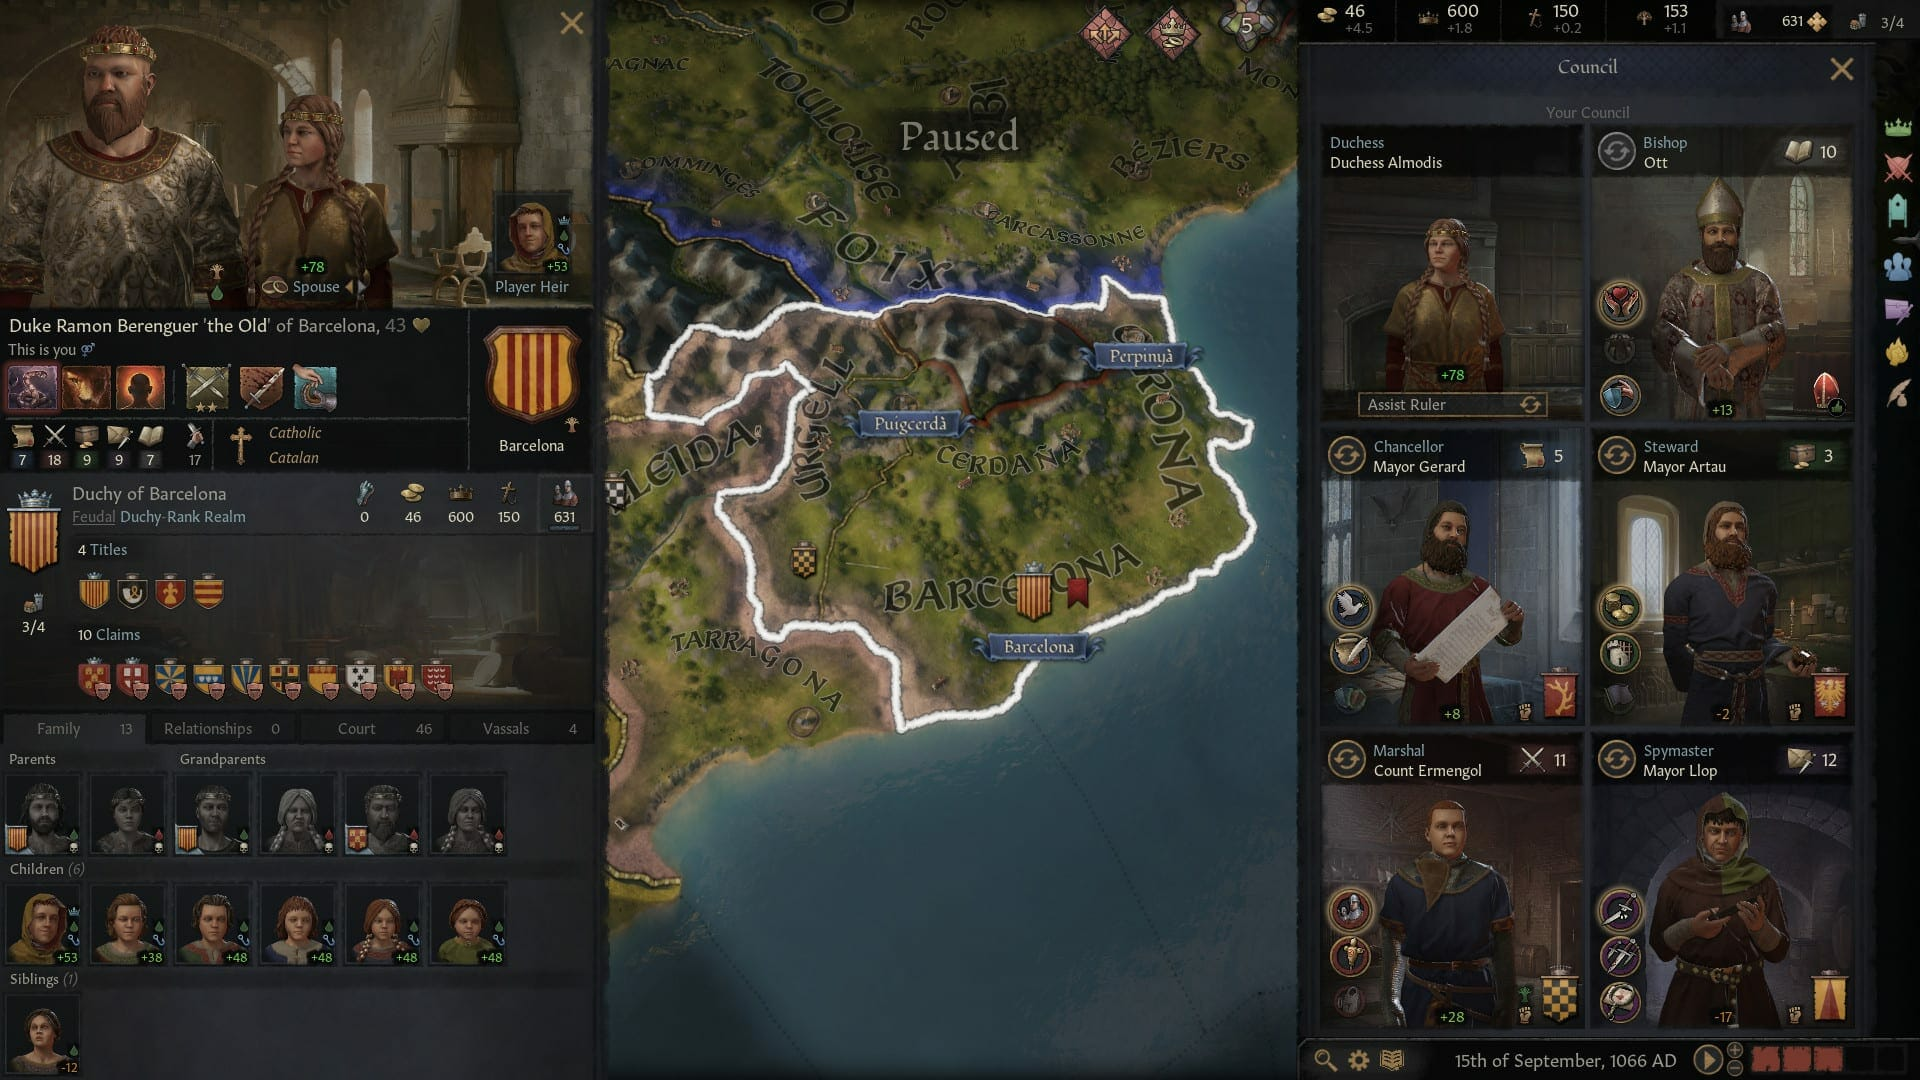 Enable Crusader Kings 3 console